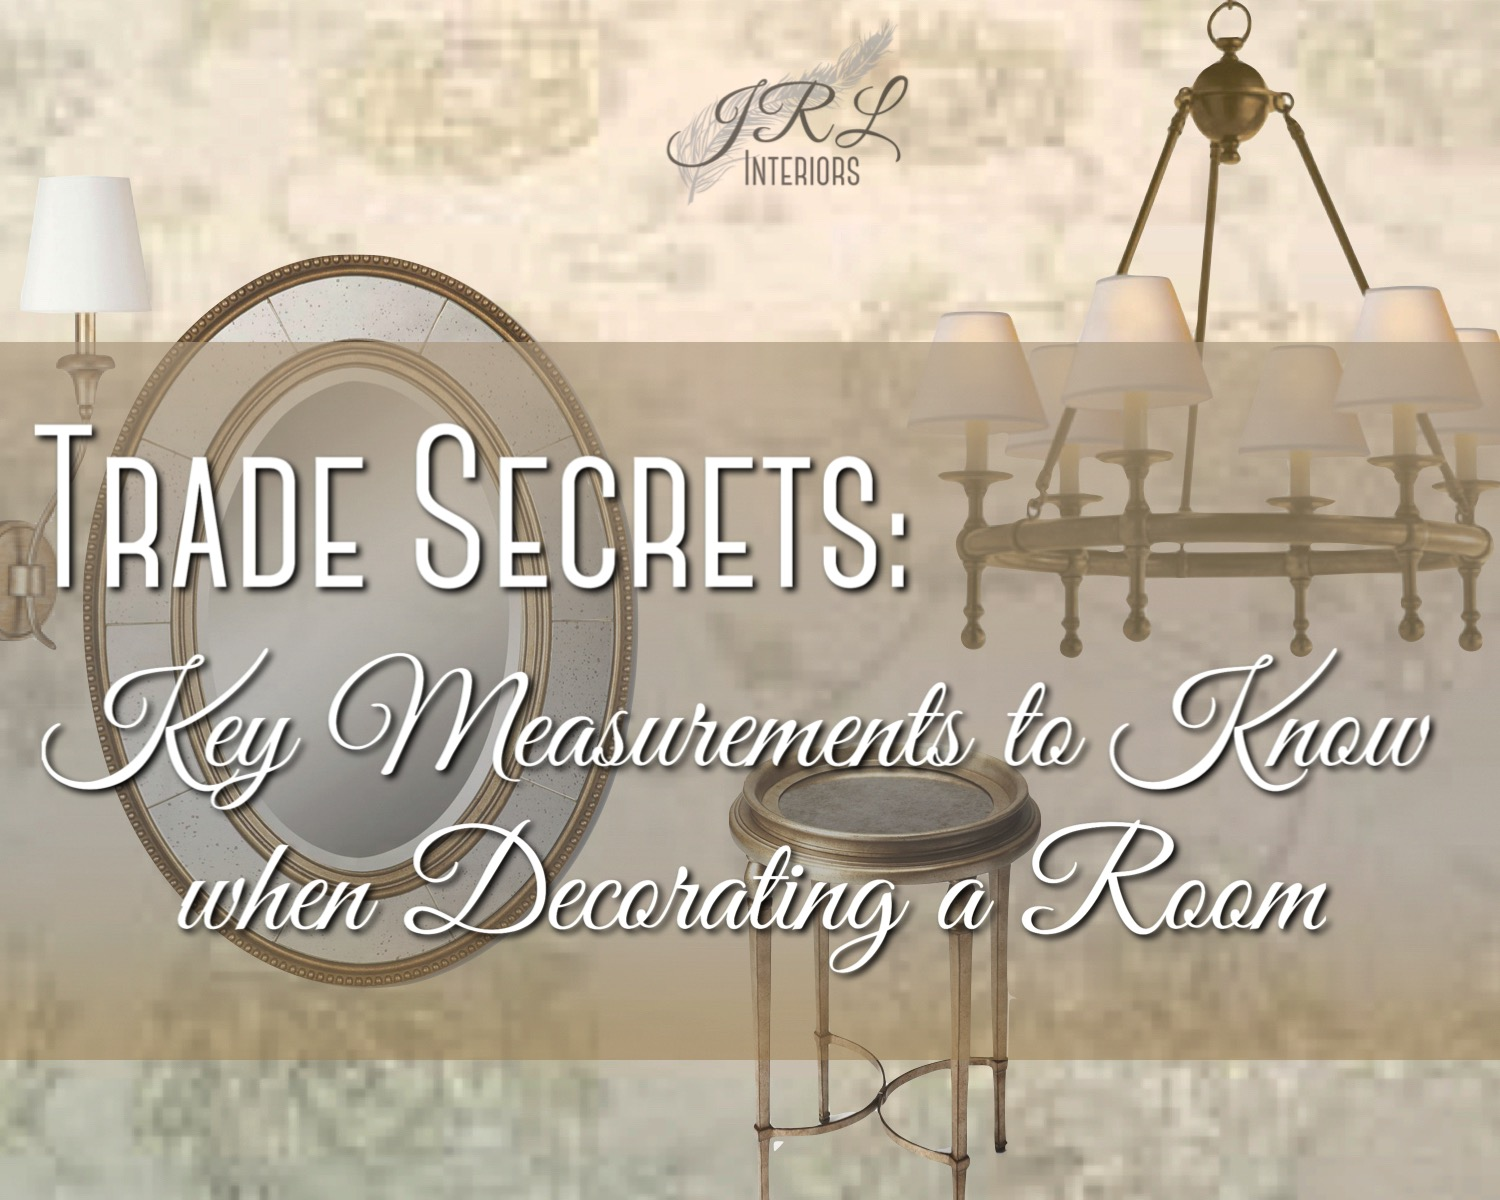 Trade Secrets. Key Measurements to Know when Decorating a Room.jpg